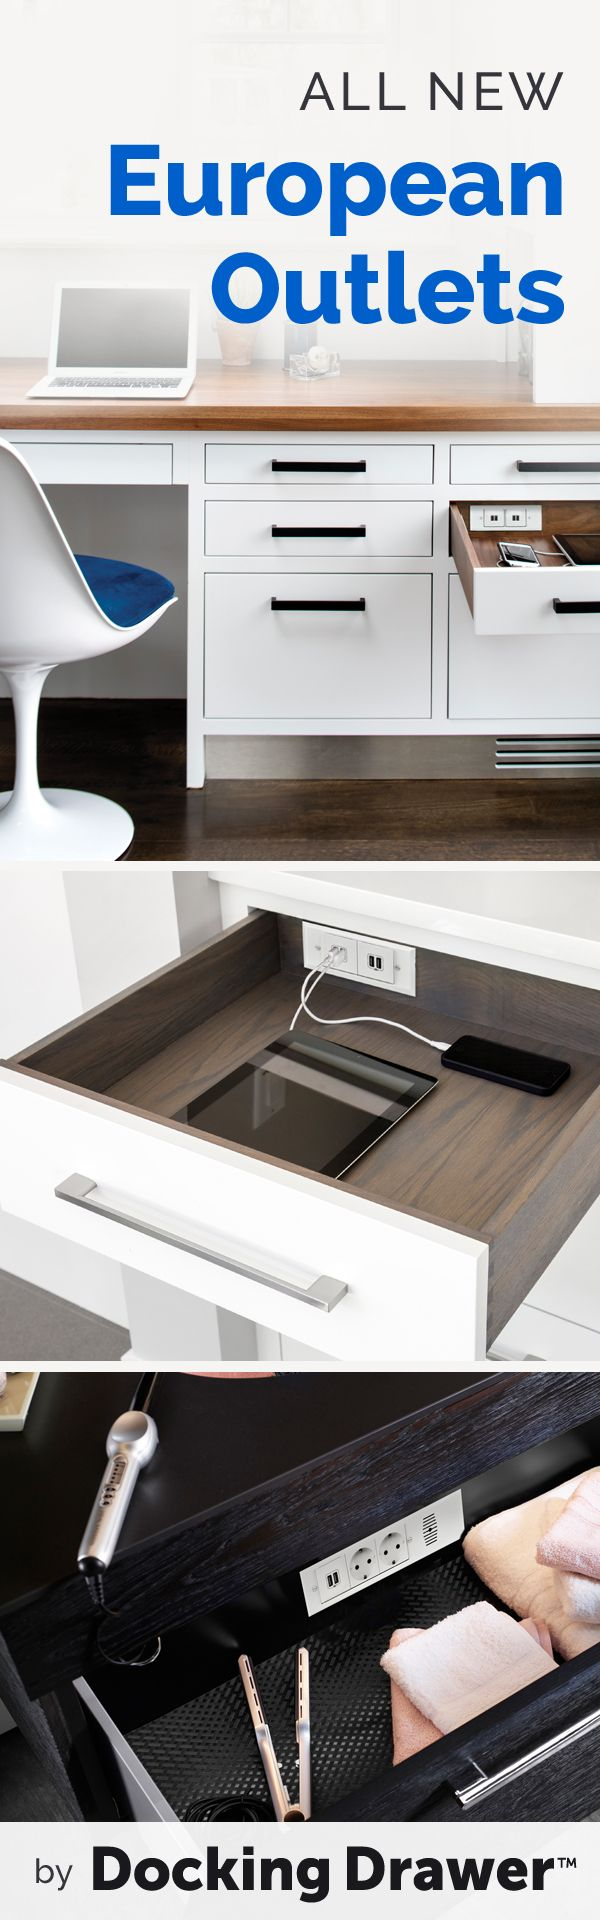 Stay organized while charging and powering everyday devices with Docking Drawer's hidden electrical solutions.